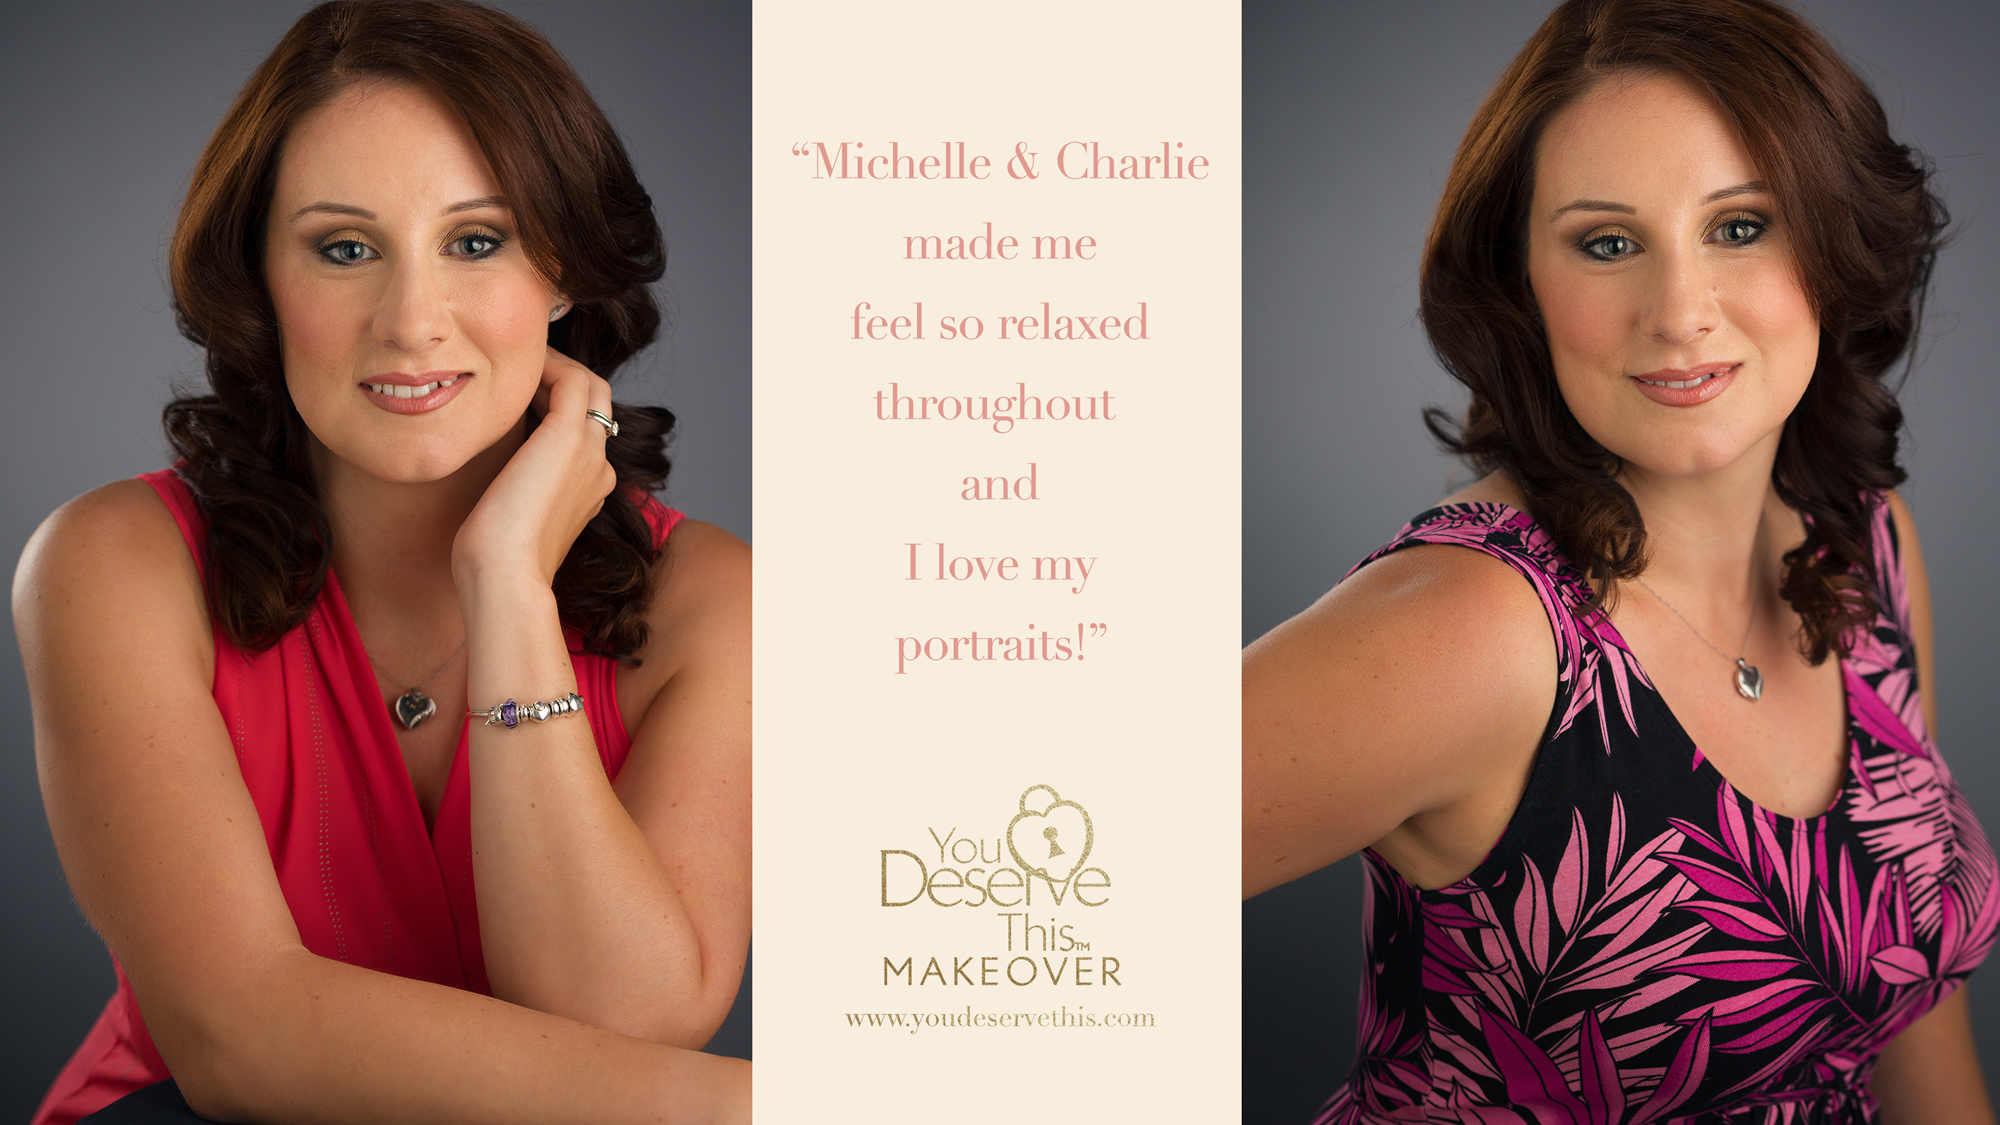 Michelle and Charlie made me feel so relaxed throughout and I love my portraits.  www.youdeservethis.com